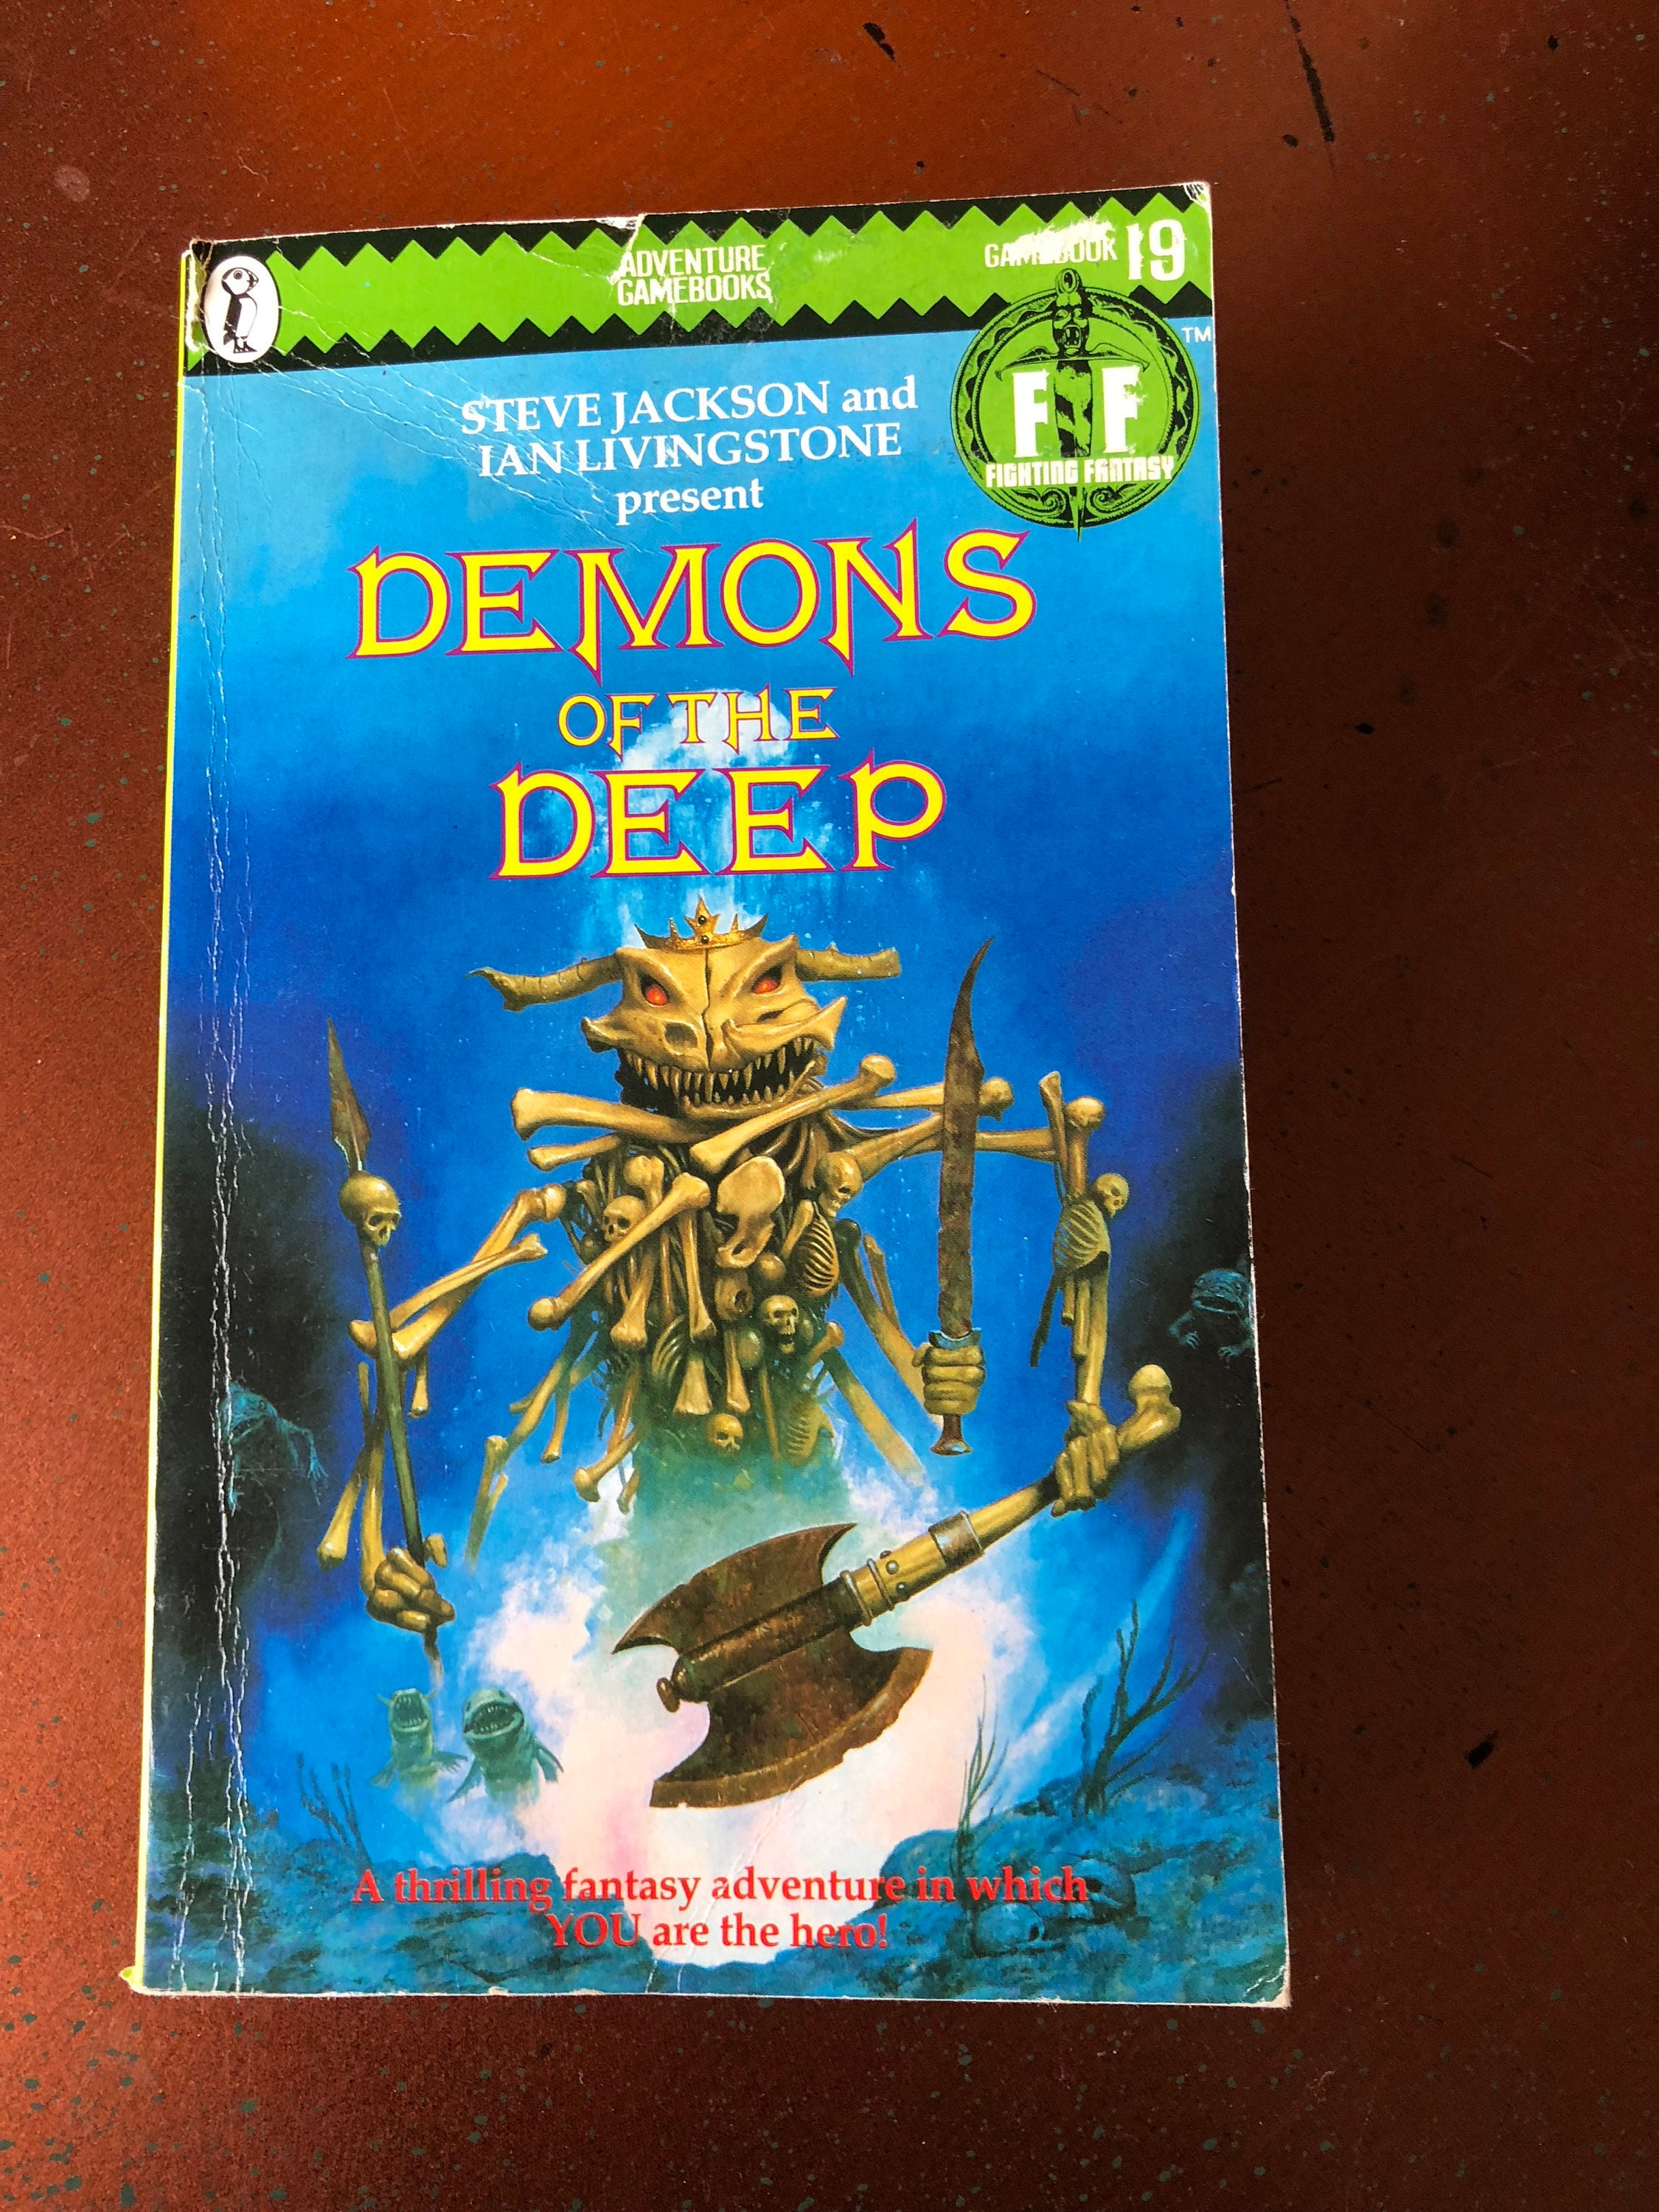 Demons of the Deep Book presented by Steve Jackson and Ian Livingstone - Vintage Game Book (1986)